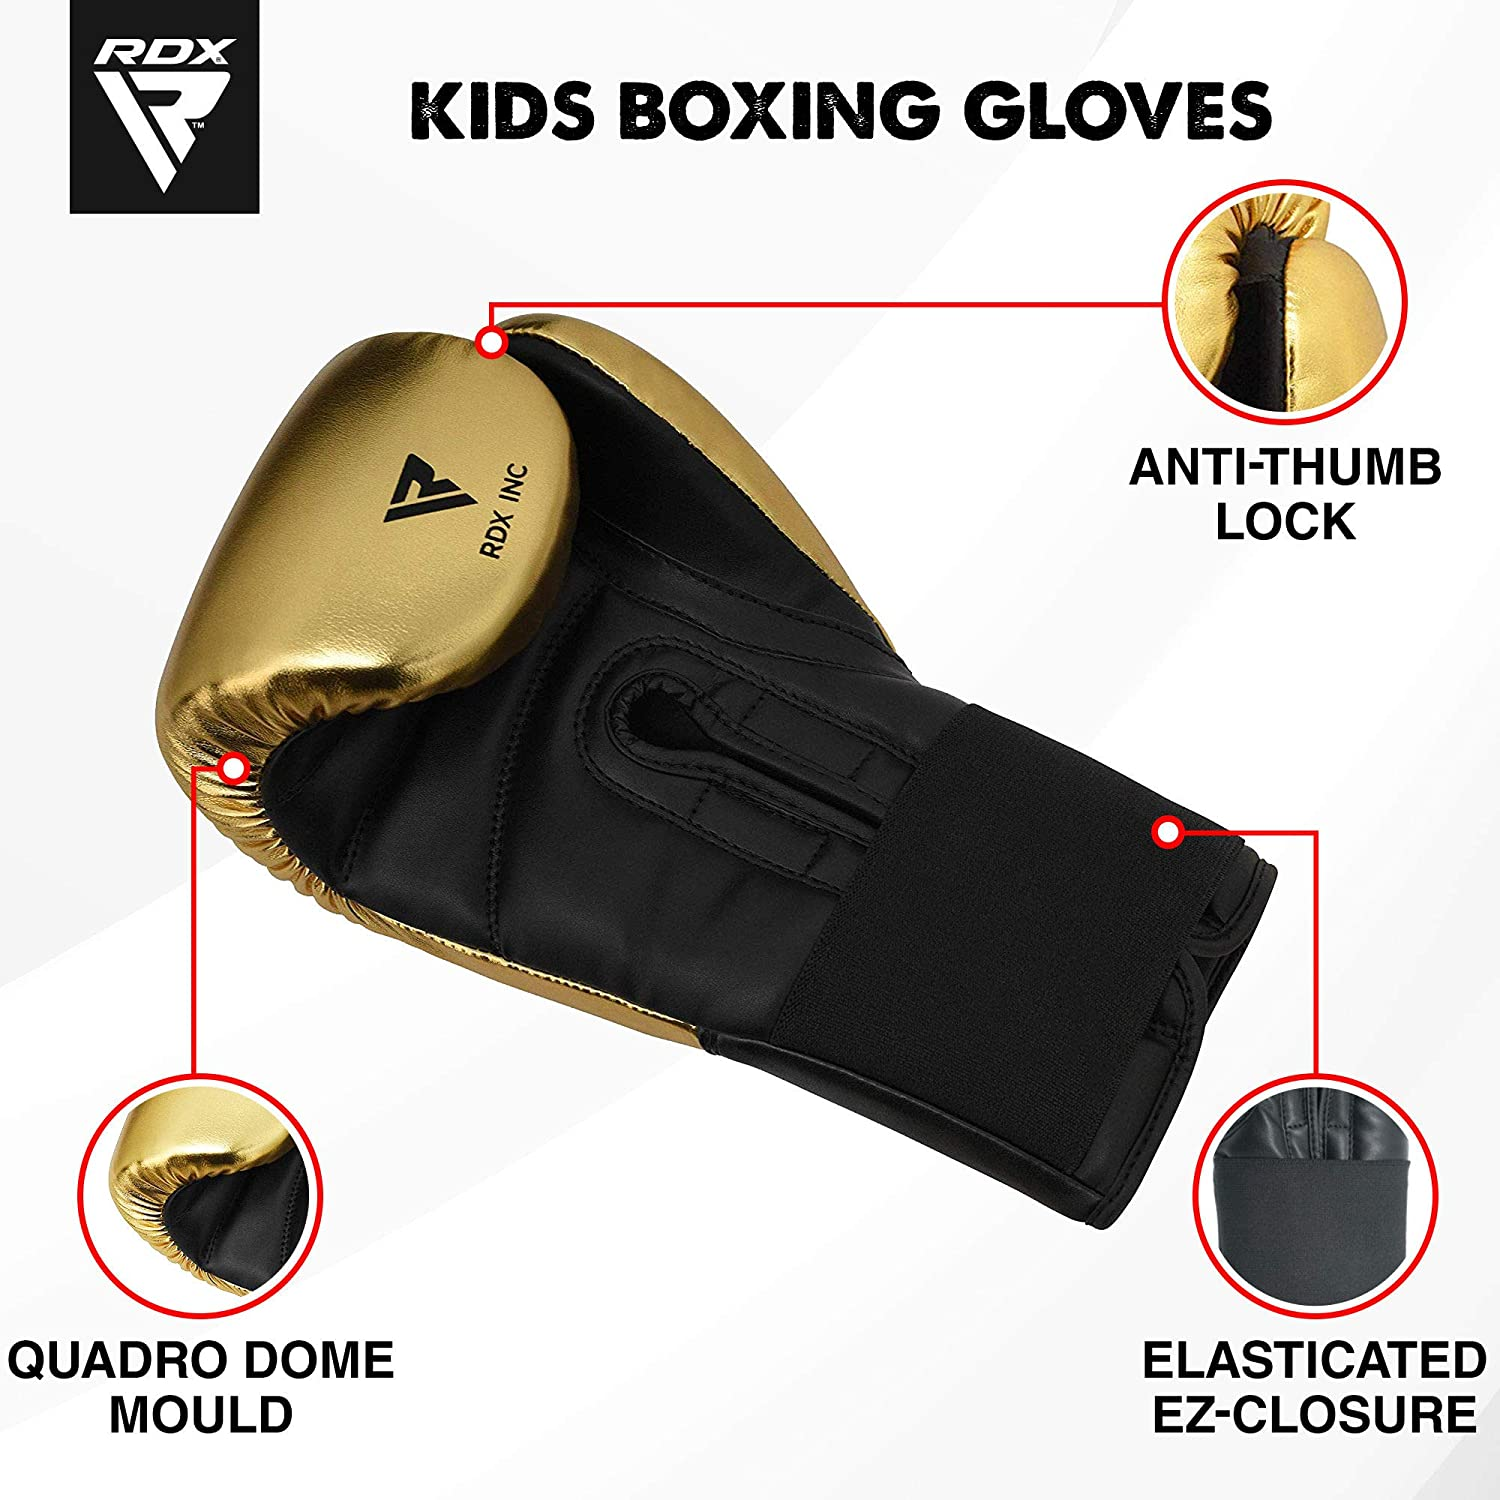 Sparring /& Fighting ConvEX Skin /& Metallic Leather Junior 8oz Mitts for Kickboxing Grappling Dummy and Focus Pads Punching Good for Youth Punch Bag RDX Kids Boxing Gloves for Training /& Muay Thai